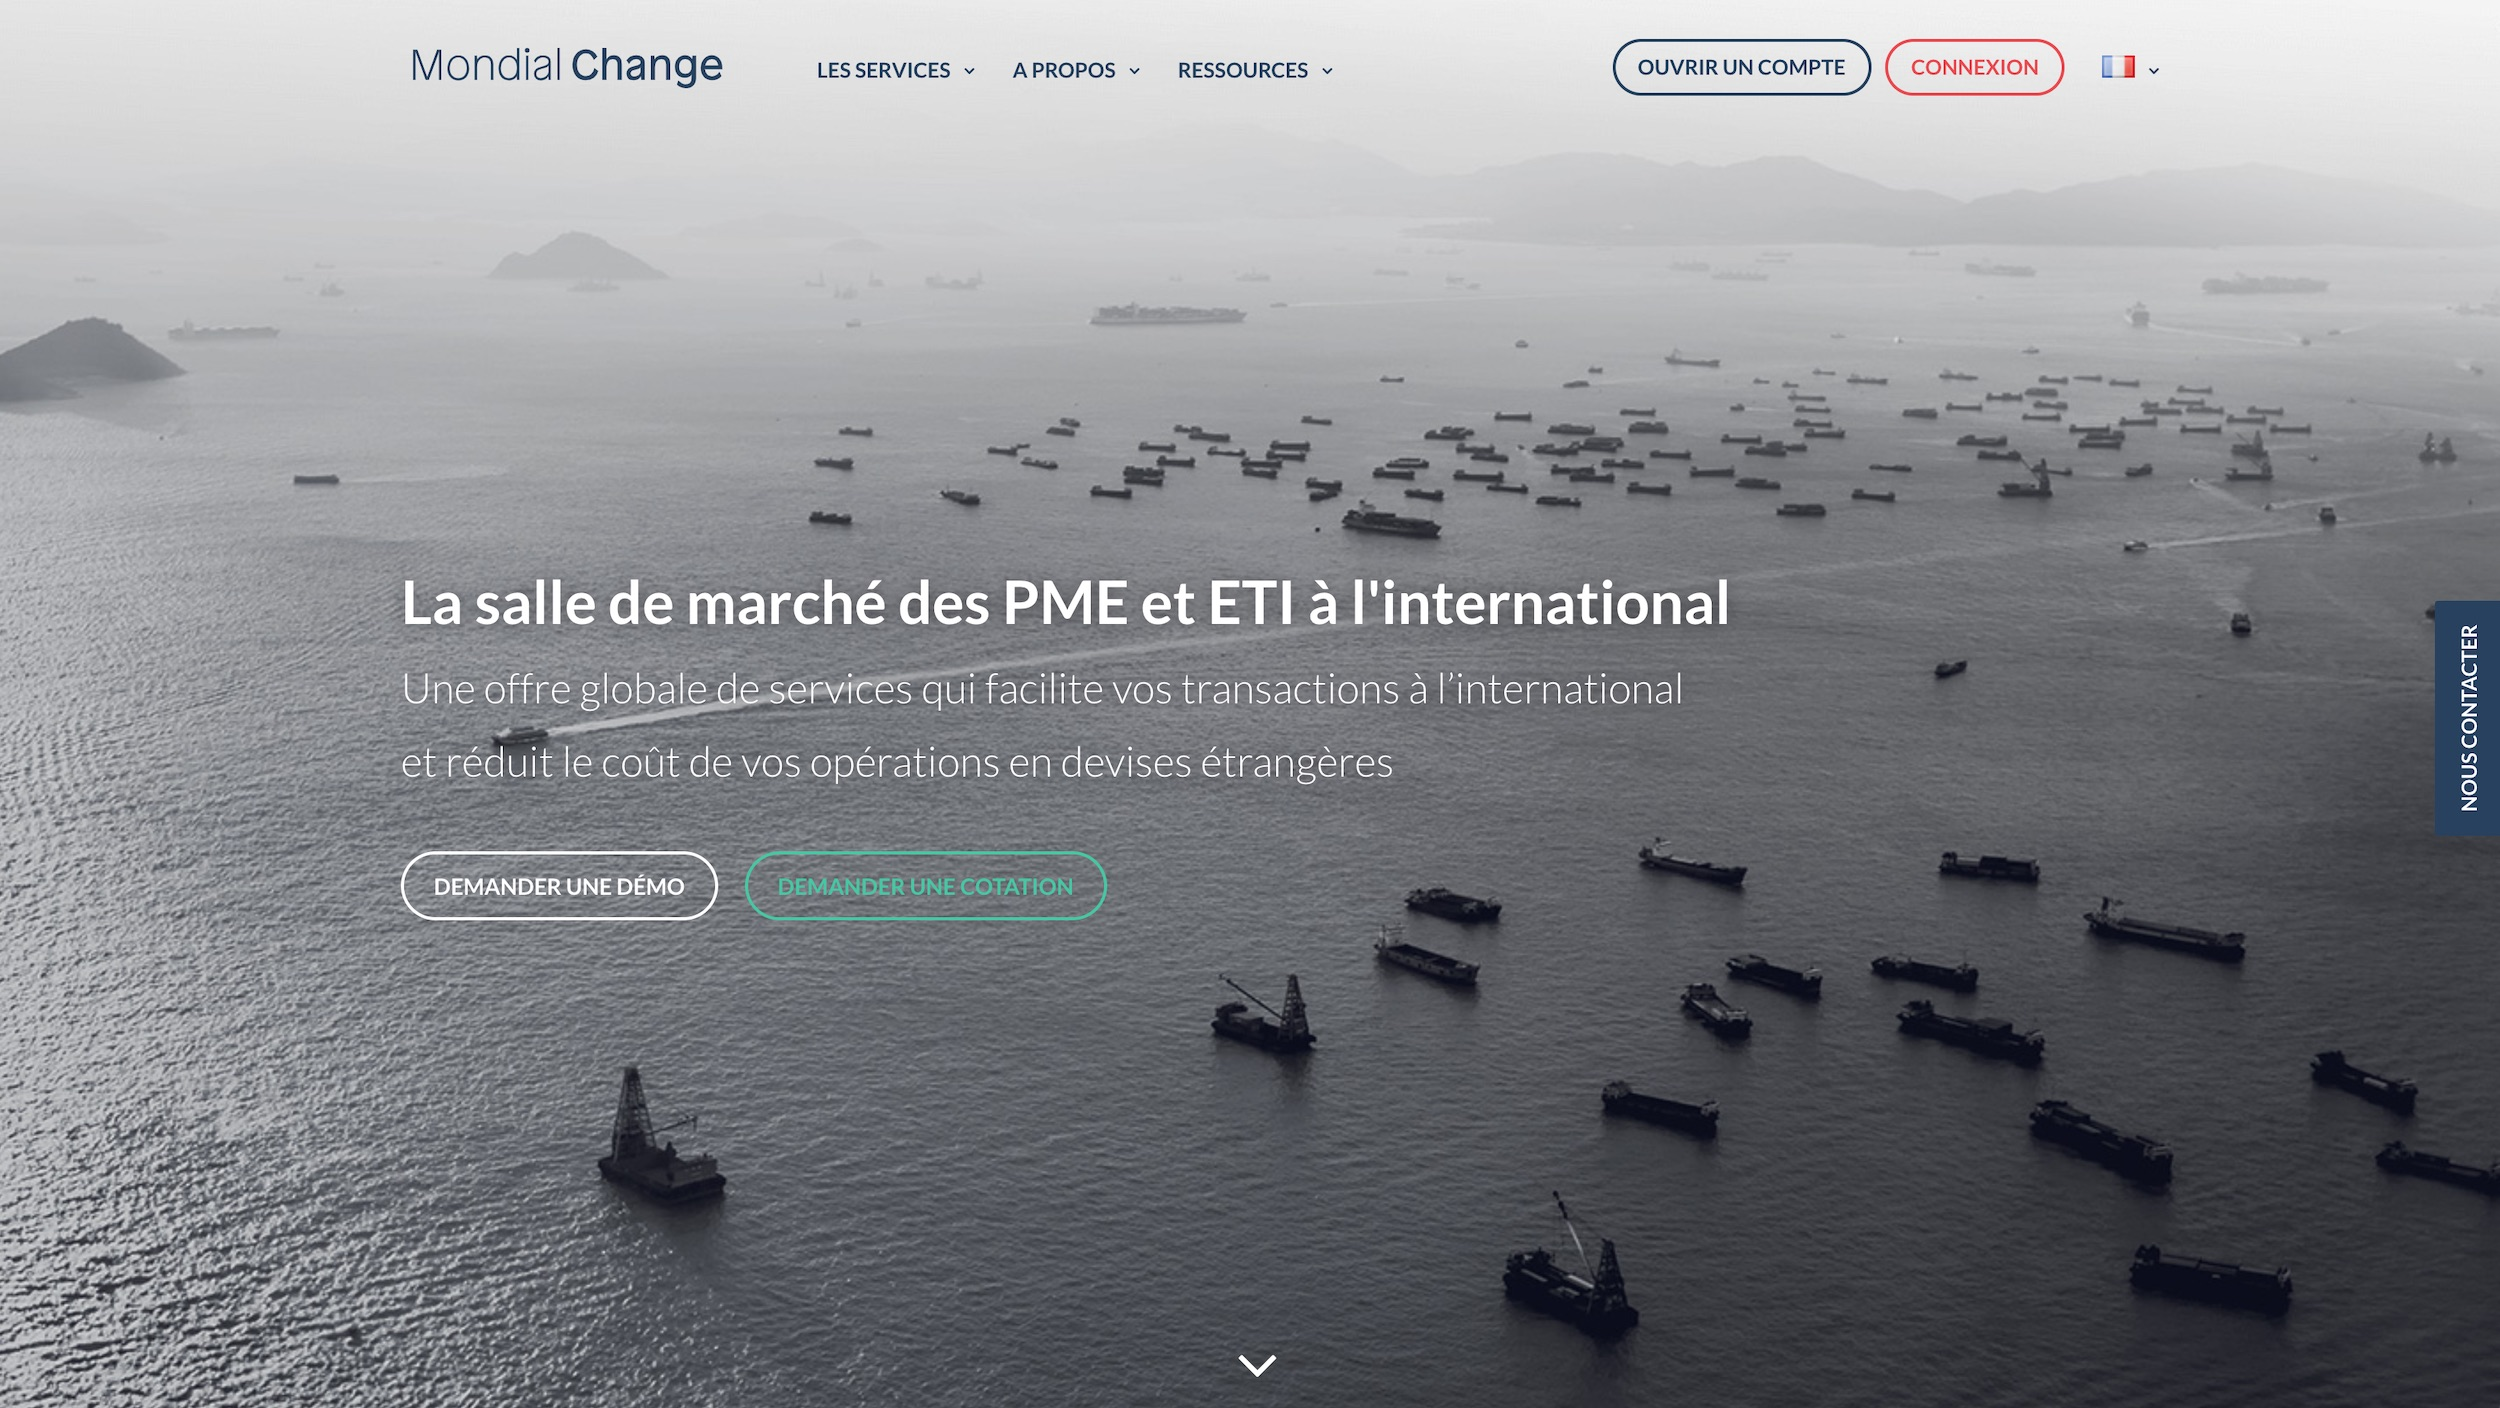 mondial-change-website-screenshot